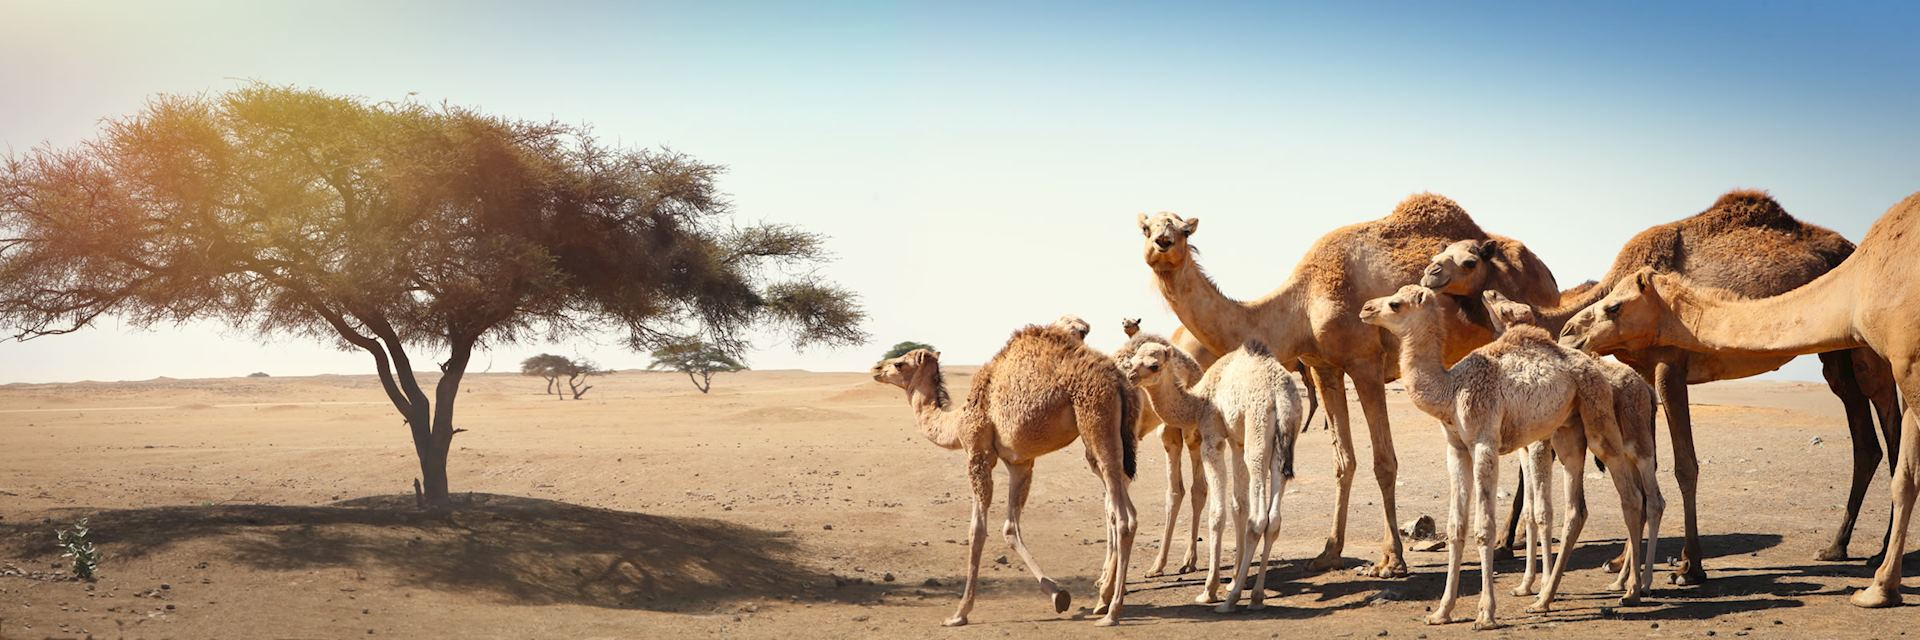 Camels in Oman